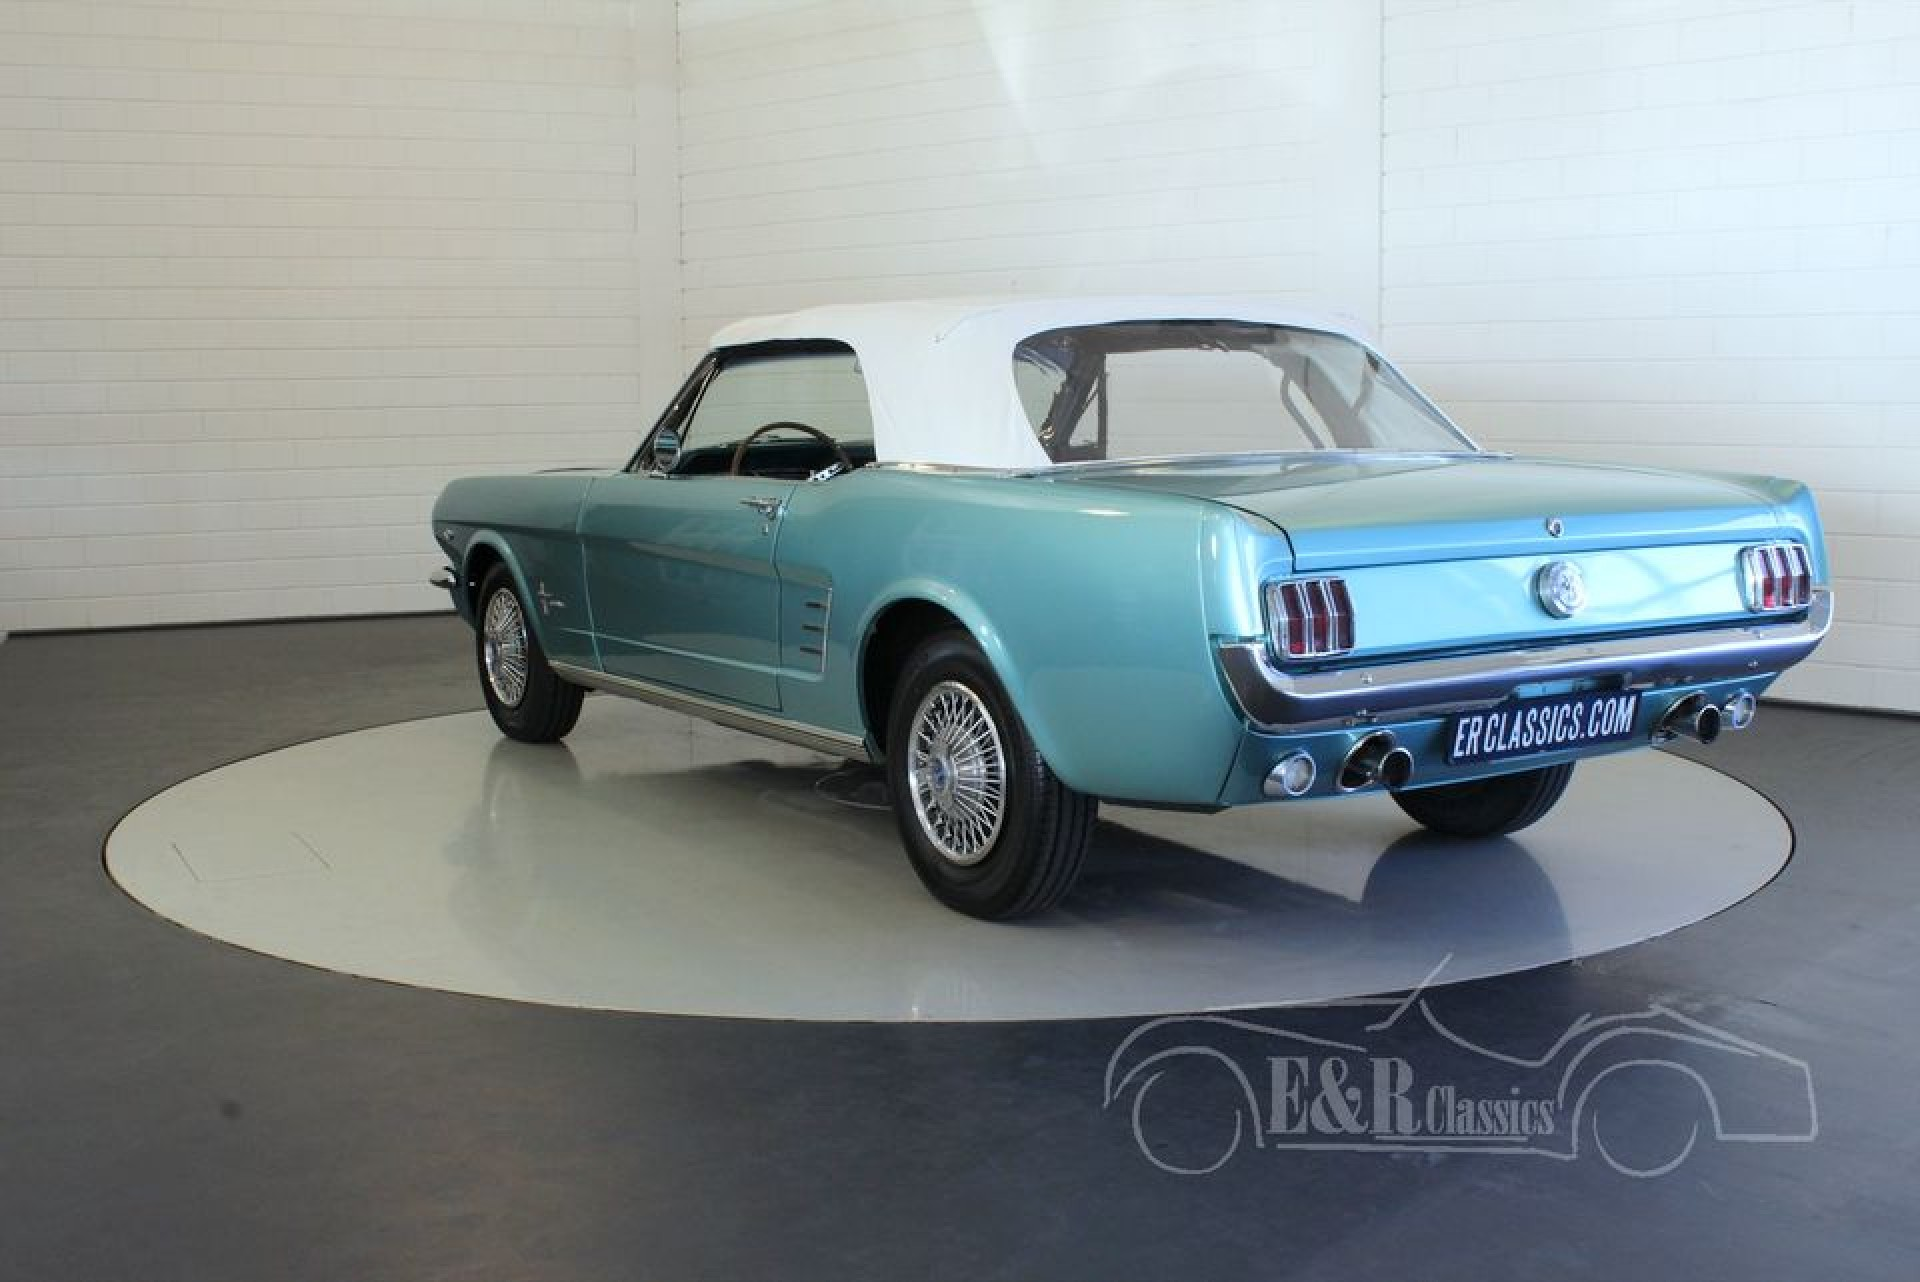 ford mustang v8 cabriolet 1966 zum kauf bei erclassics. Black Bedroom Furniture Sets. Home Design Ideas